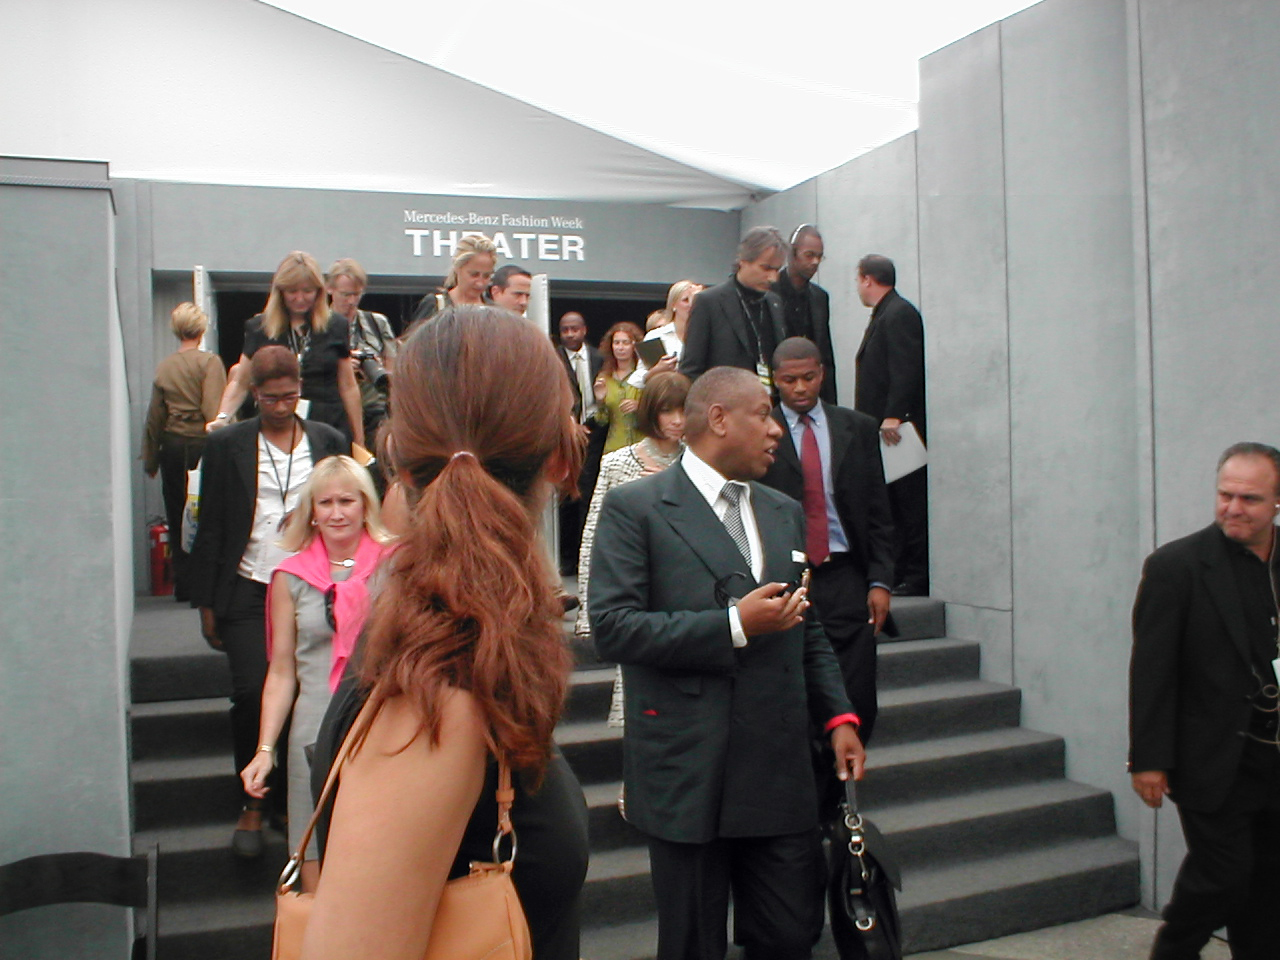 Anna Wintour also ceased the Met Gala interview duties for André Leon Talley. Source: Wikipedia.